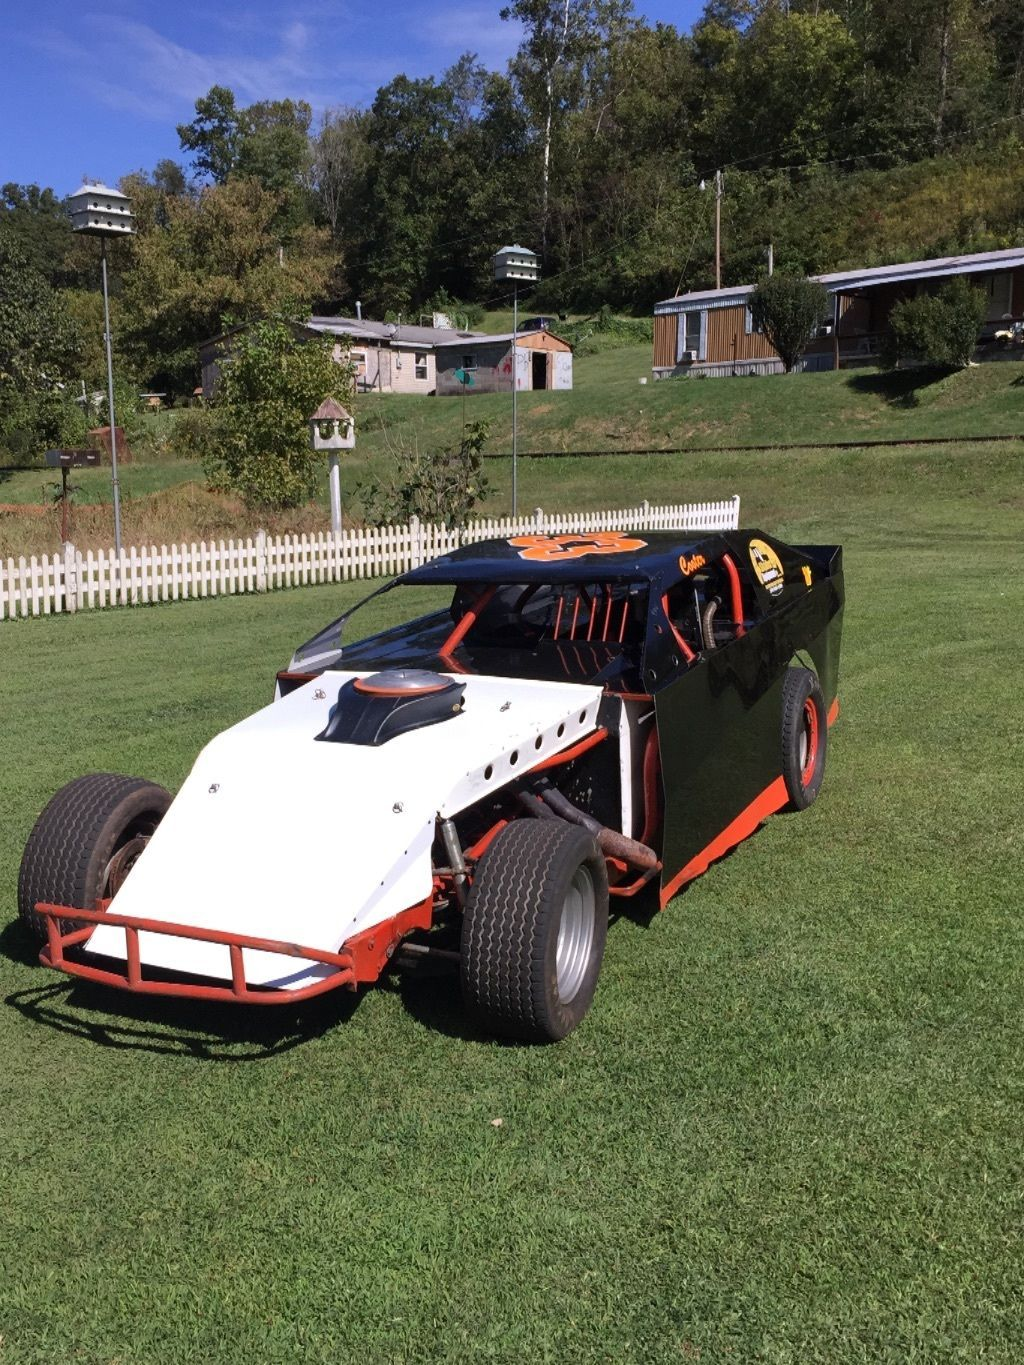 09 Dirt Works Modified Race Cars For Sale Pinterest Cars